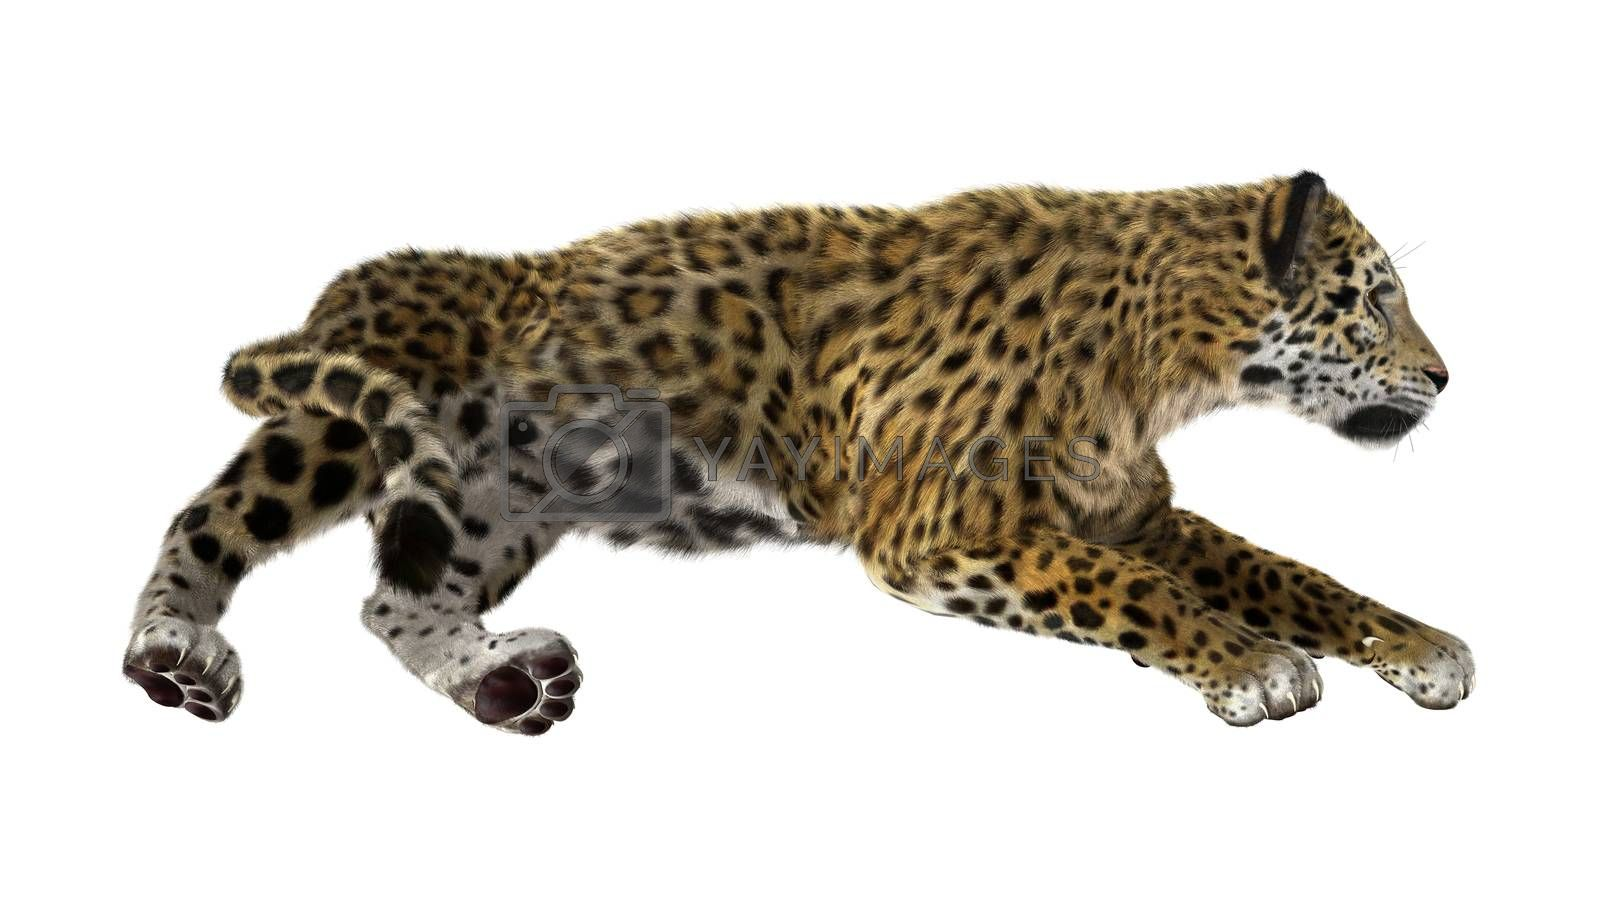 3D digital render of a big cat jaguar isolated on white background